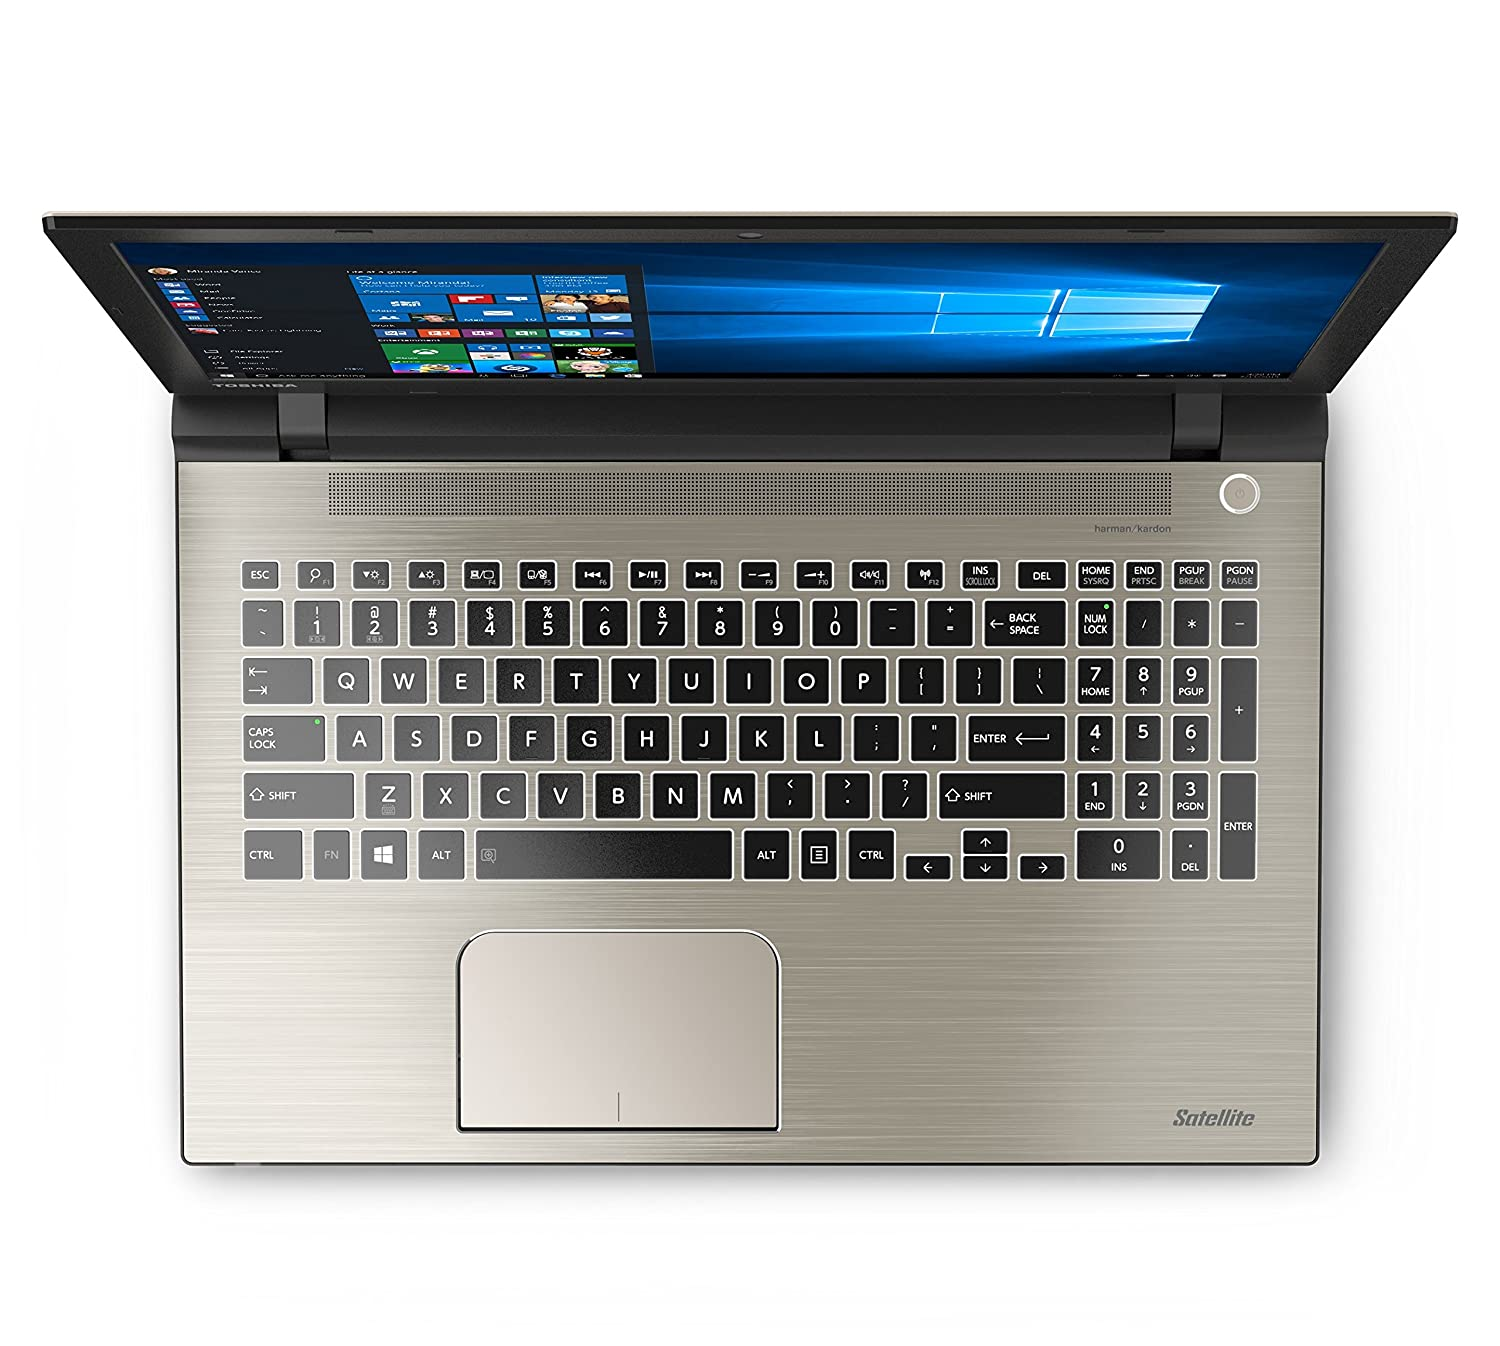 TOSHIBA SATELLITE PRO L55-A ALPS TOUCHPAD DRIVERS FOR WINDOWS